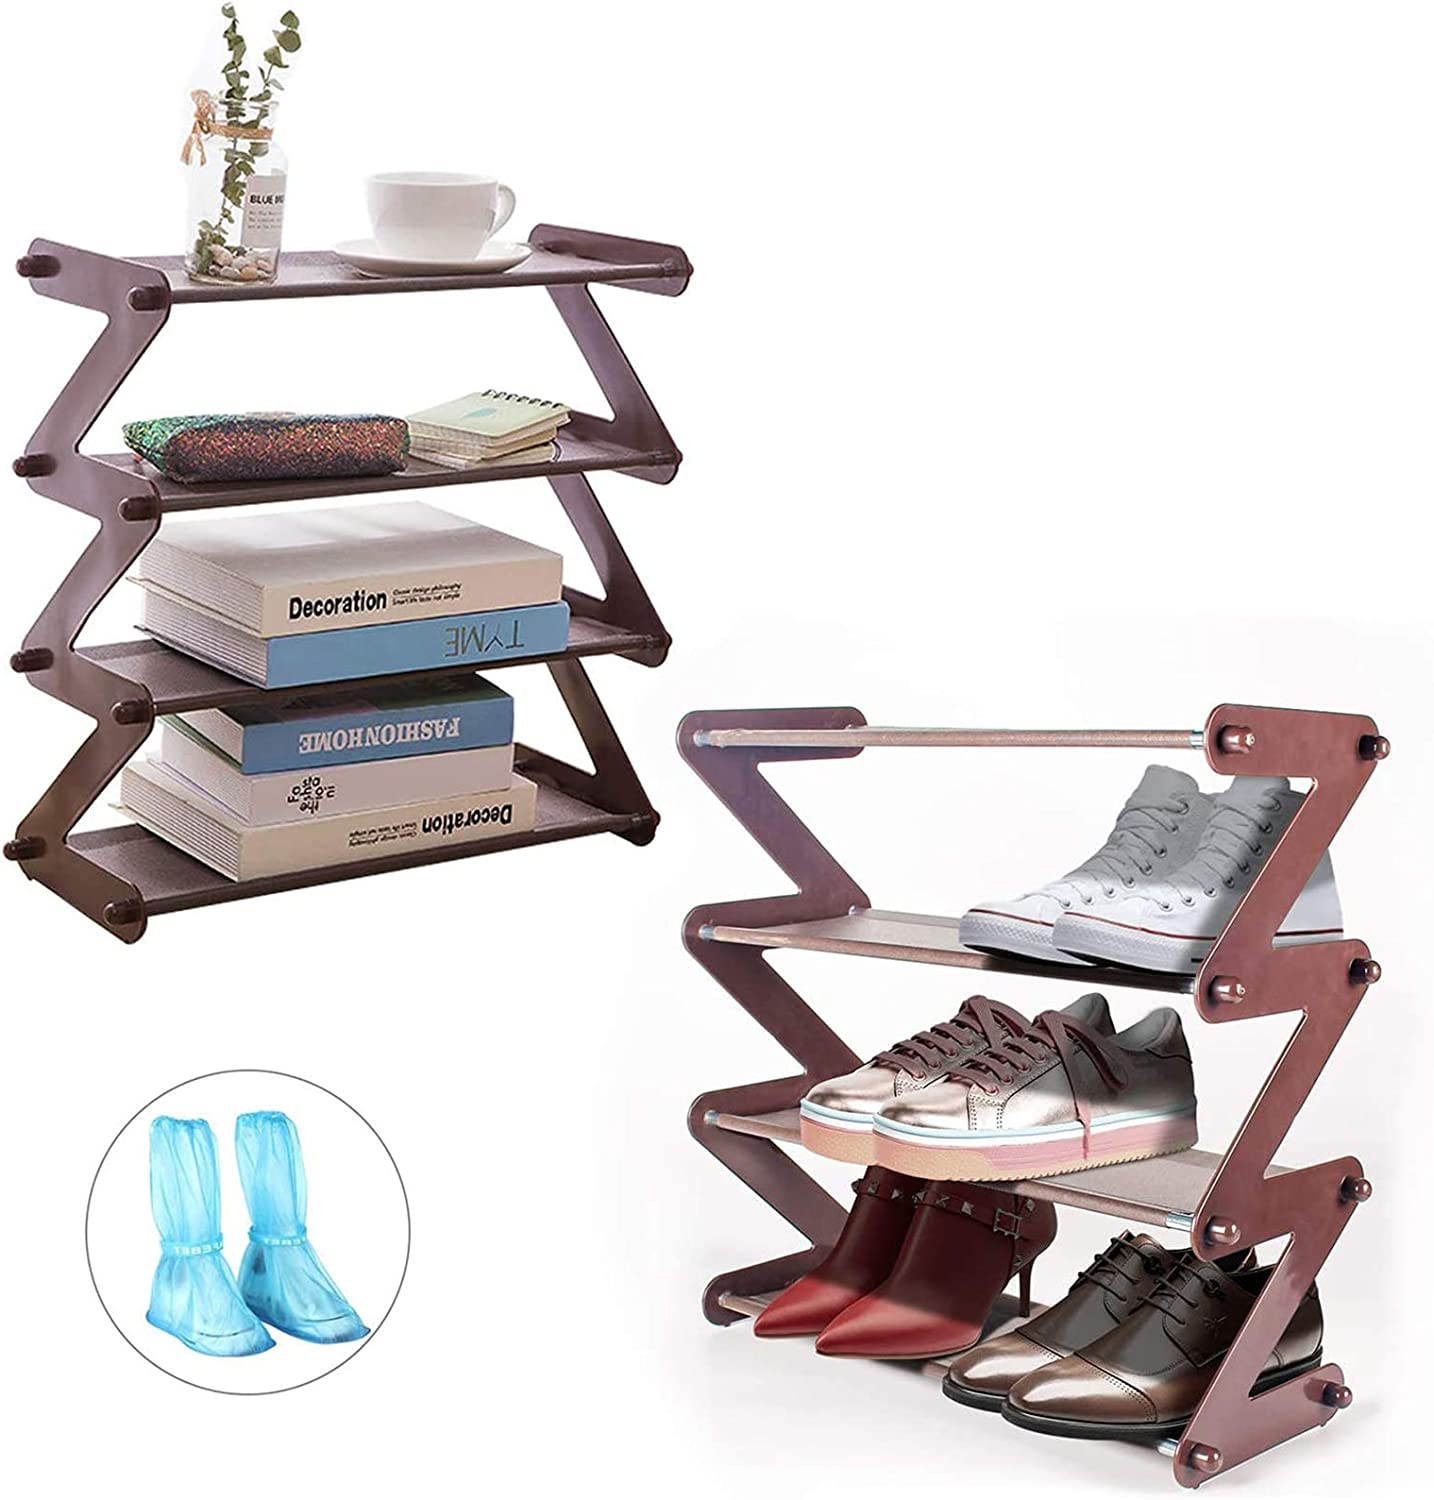 MIAOKE 2 Pieces Stackable Shoe Organizer, 4-Tier Stackable Shoe Rack, Multi-Layer Shoe Storage Organizer, Shoe Rack for Shoes and Daily Supplies + A Pair of Plastic Shoe Covers